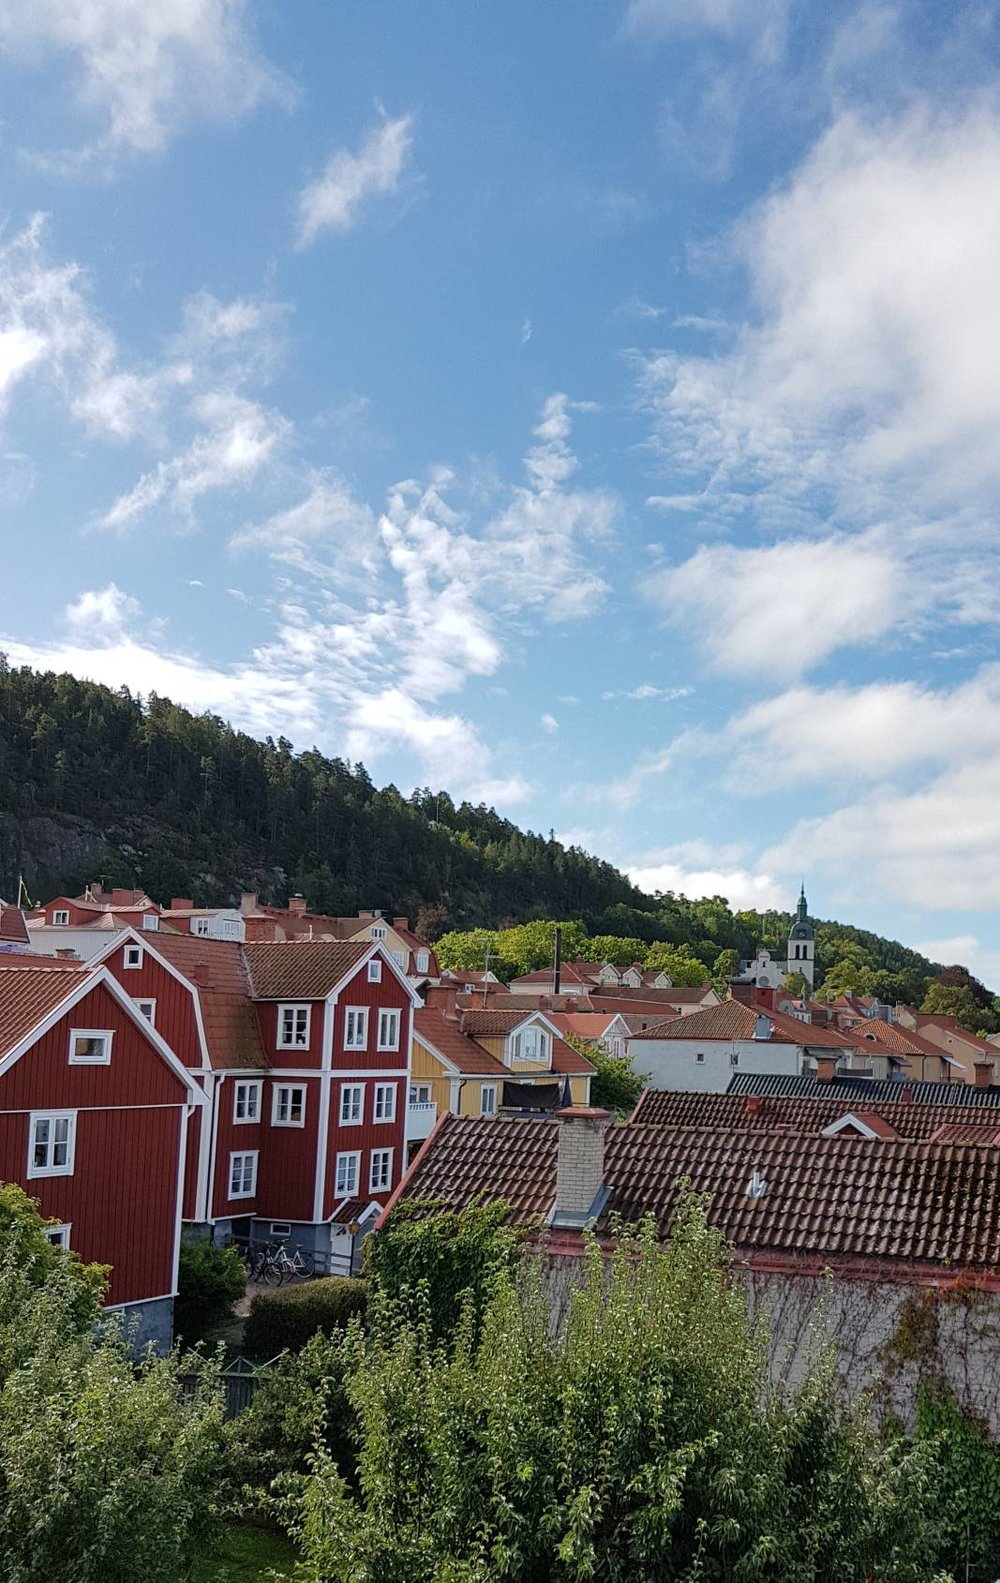 A view of Gränna in the Diocese of Växjö, Sweden, taken on the morning of September 3rd, 2017